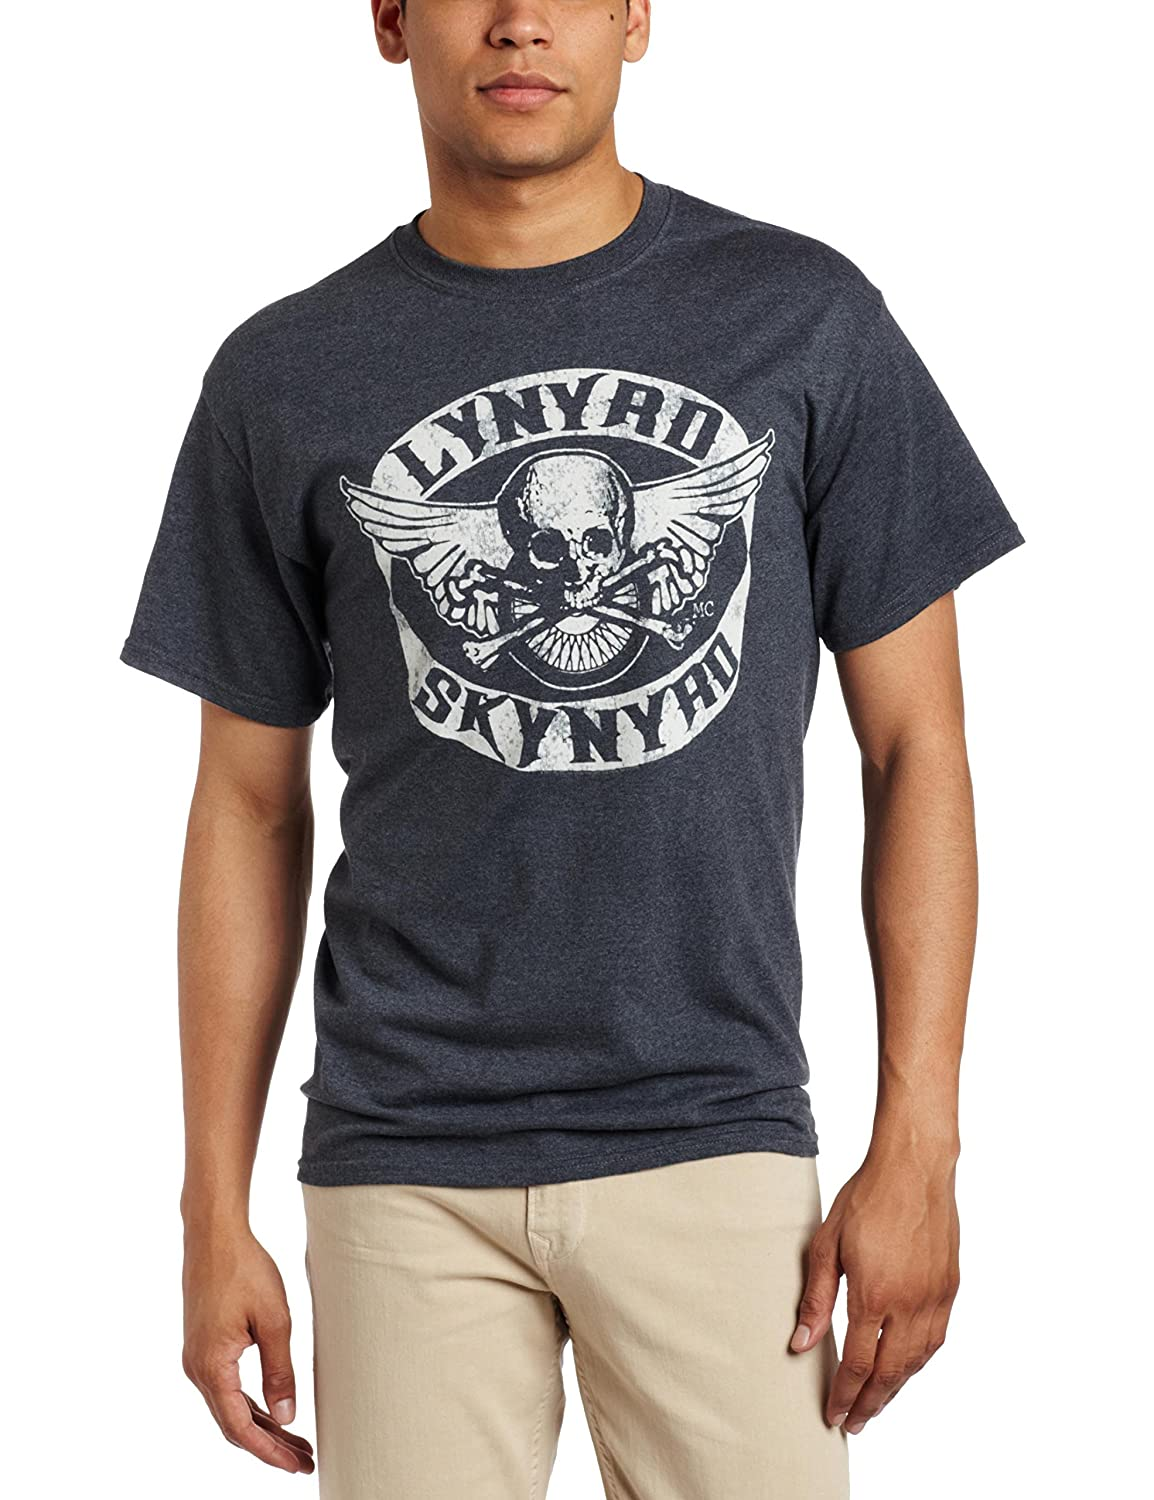 FEA Merchandising Men's Lynyrd Skynyrd Biker Patch T-Shirt LS119